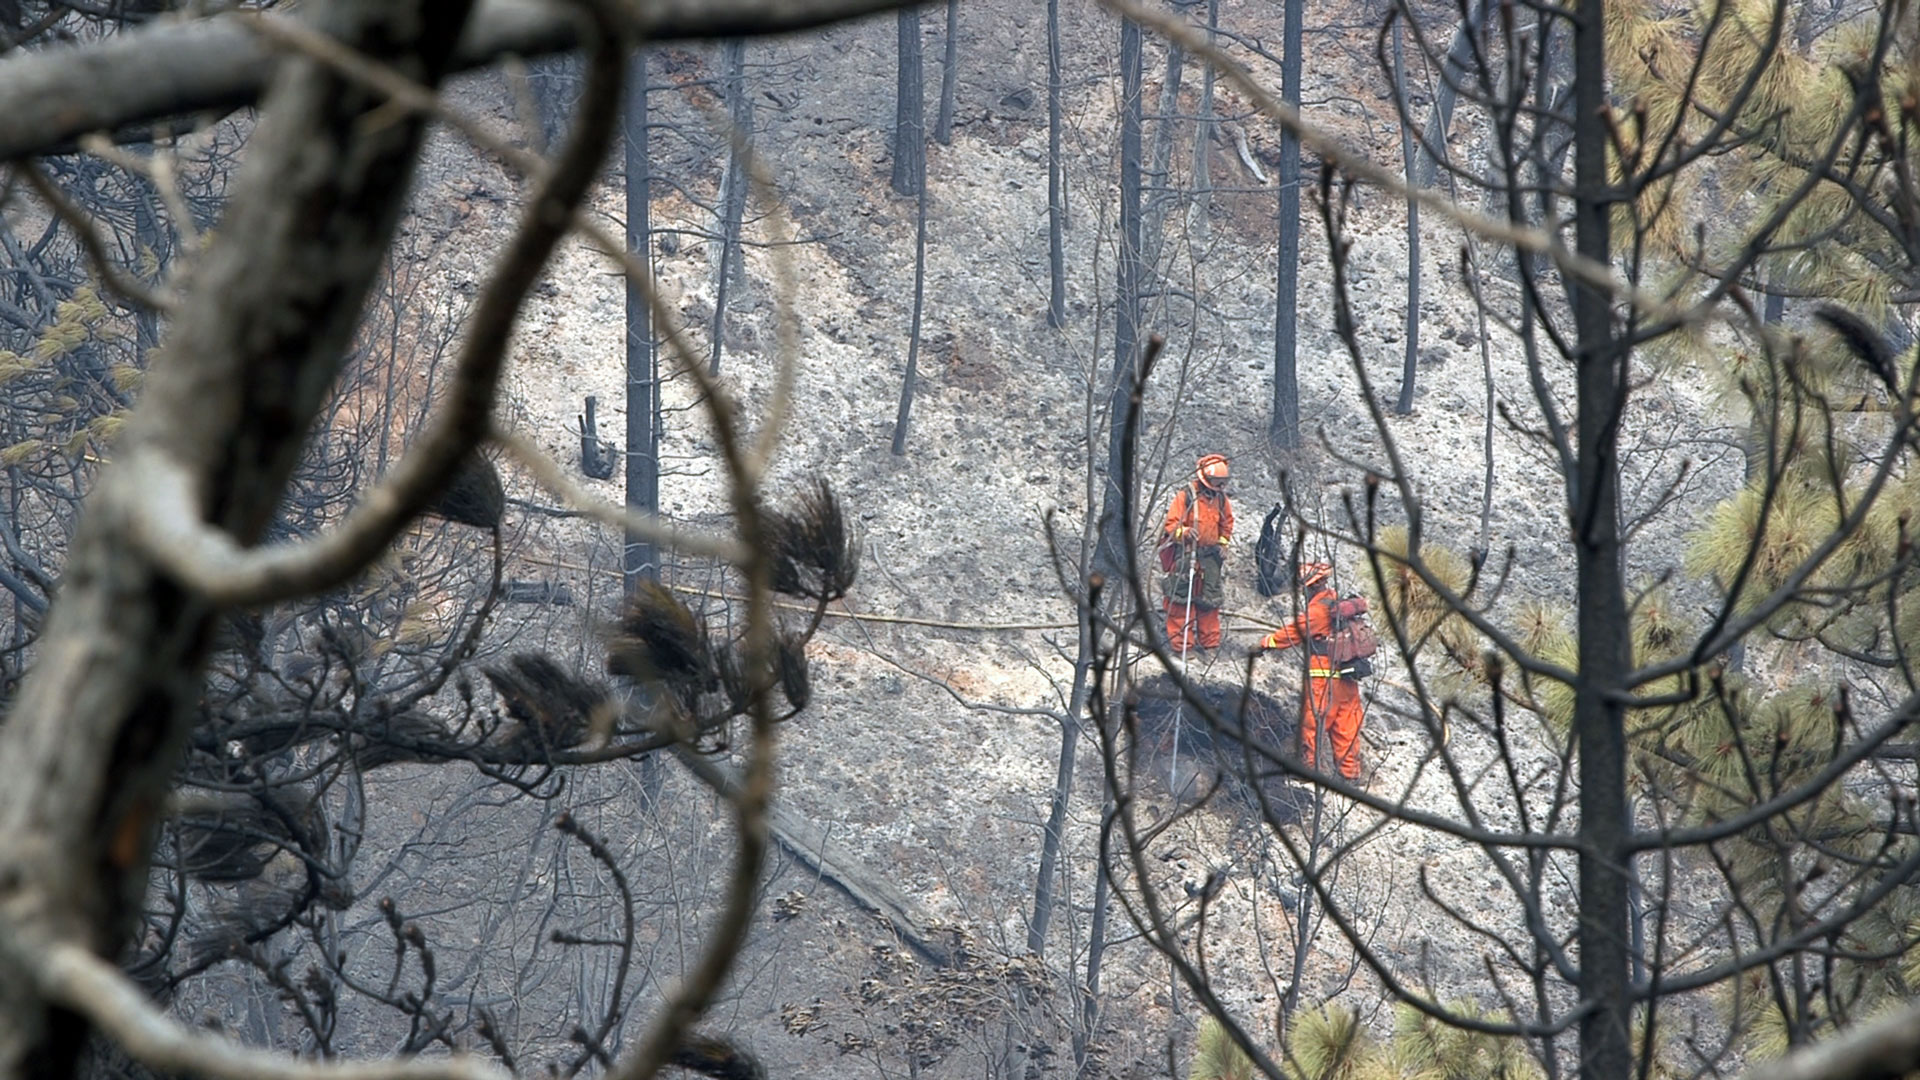 Inmate firefighters seen from a distance, working on the Bully fire.